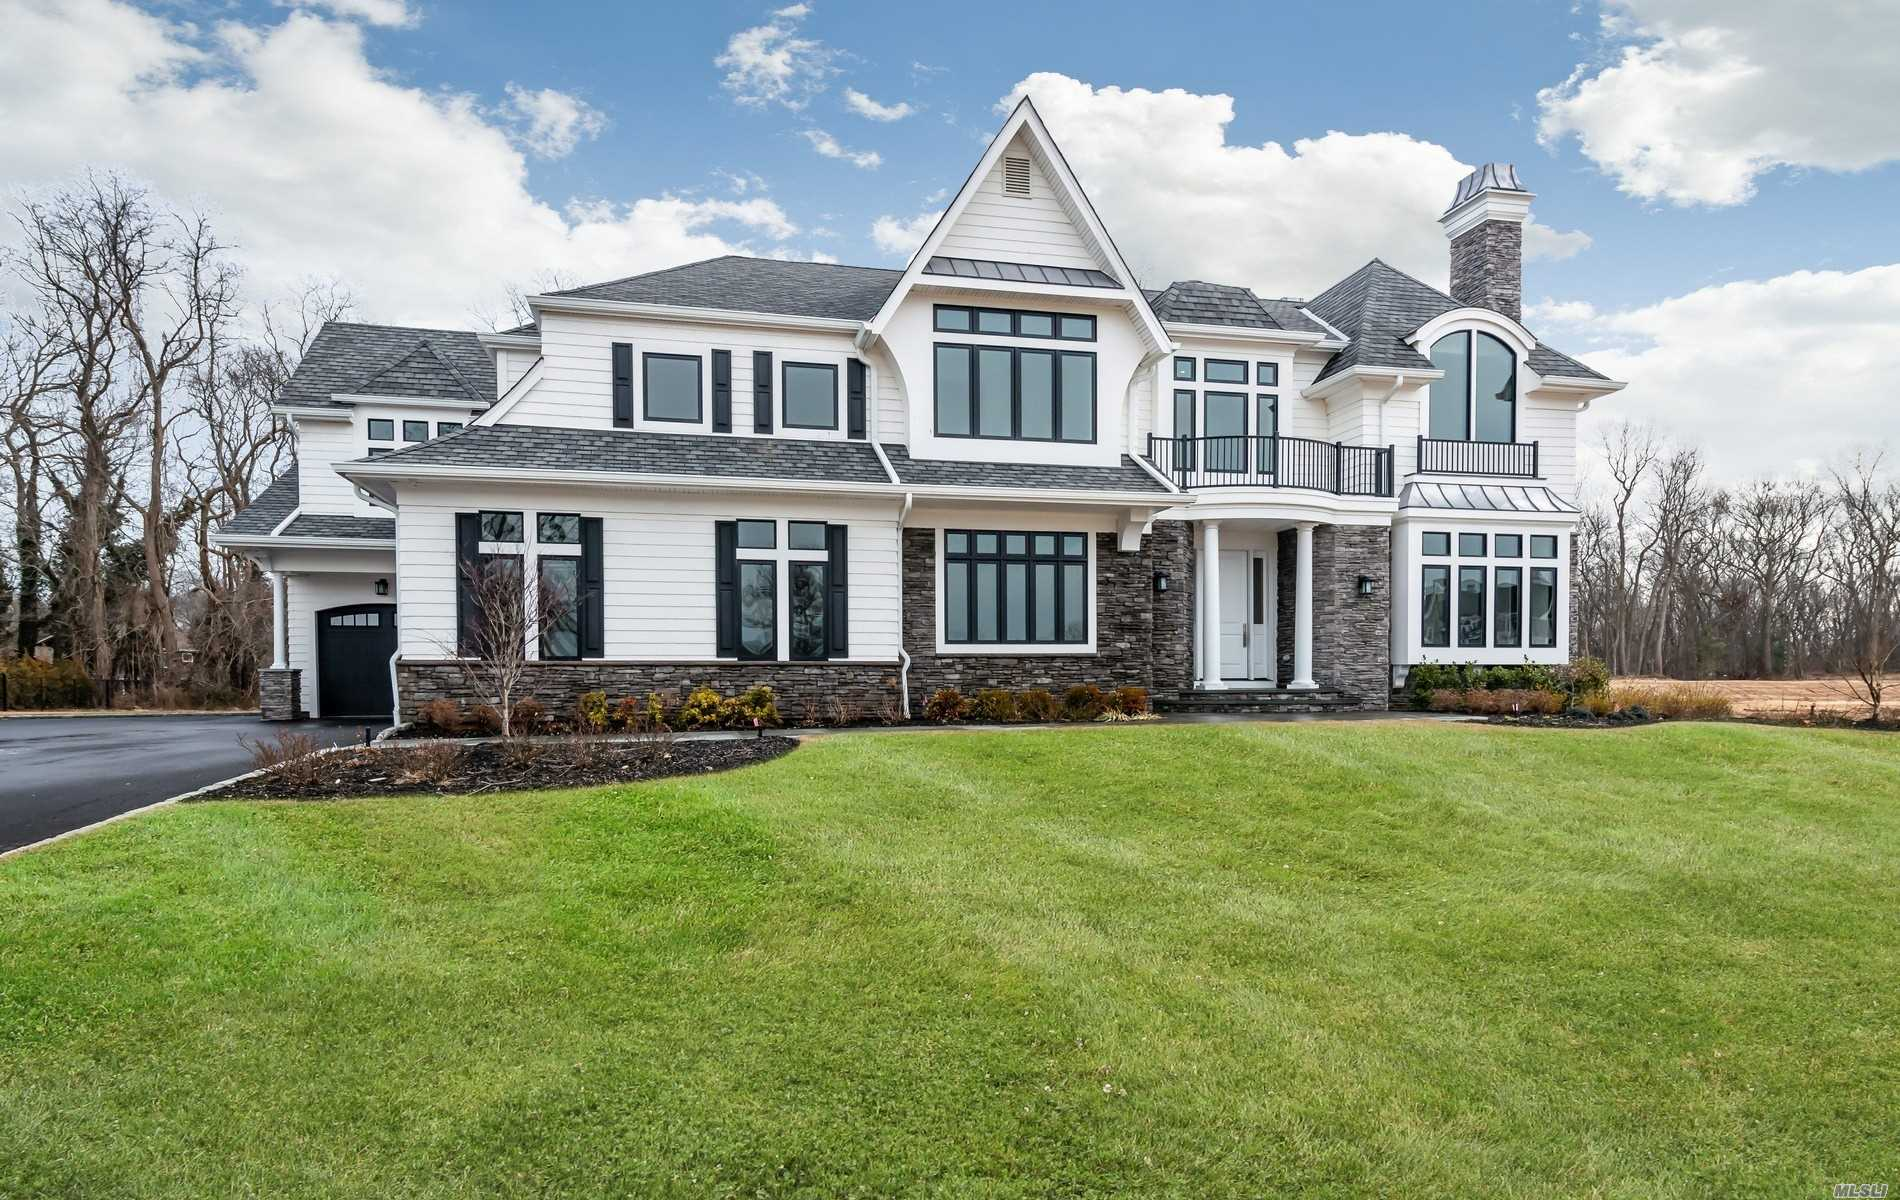 Residenziale in Lot #19 Long Drive Court, Dix Hills, NY ,11746